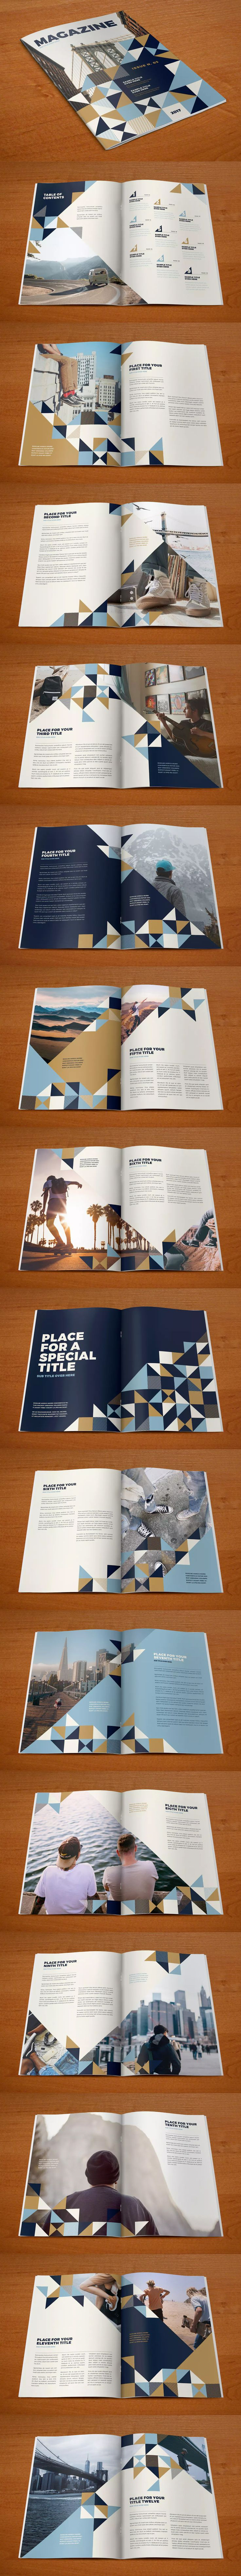 Cool Pattern Magazine Template InDesign INDD - 32 Custom Pages